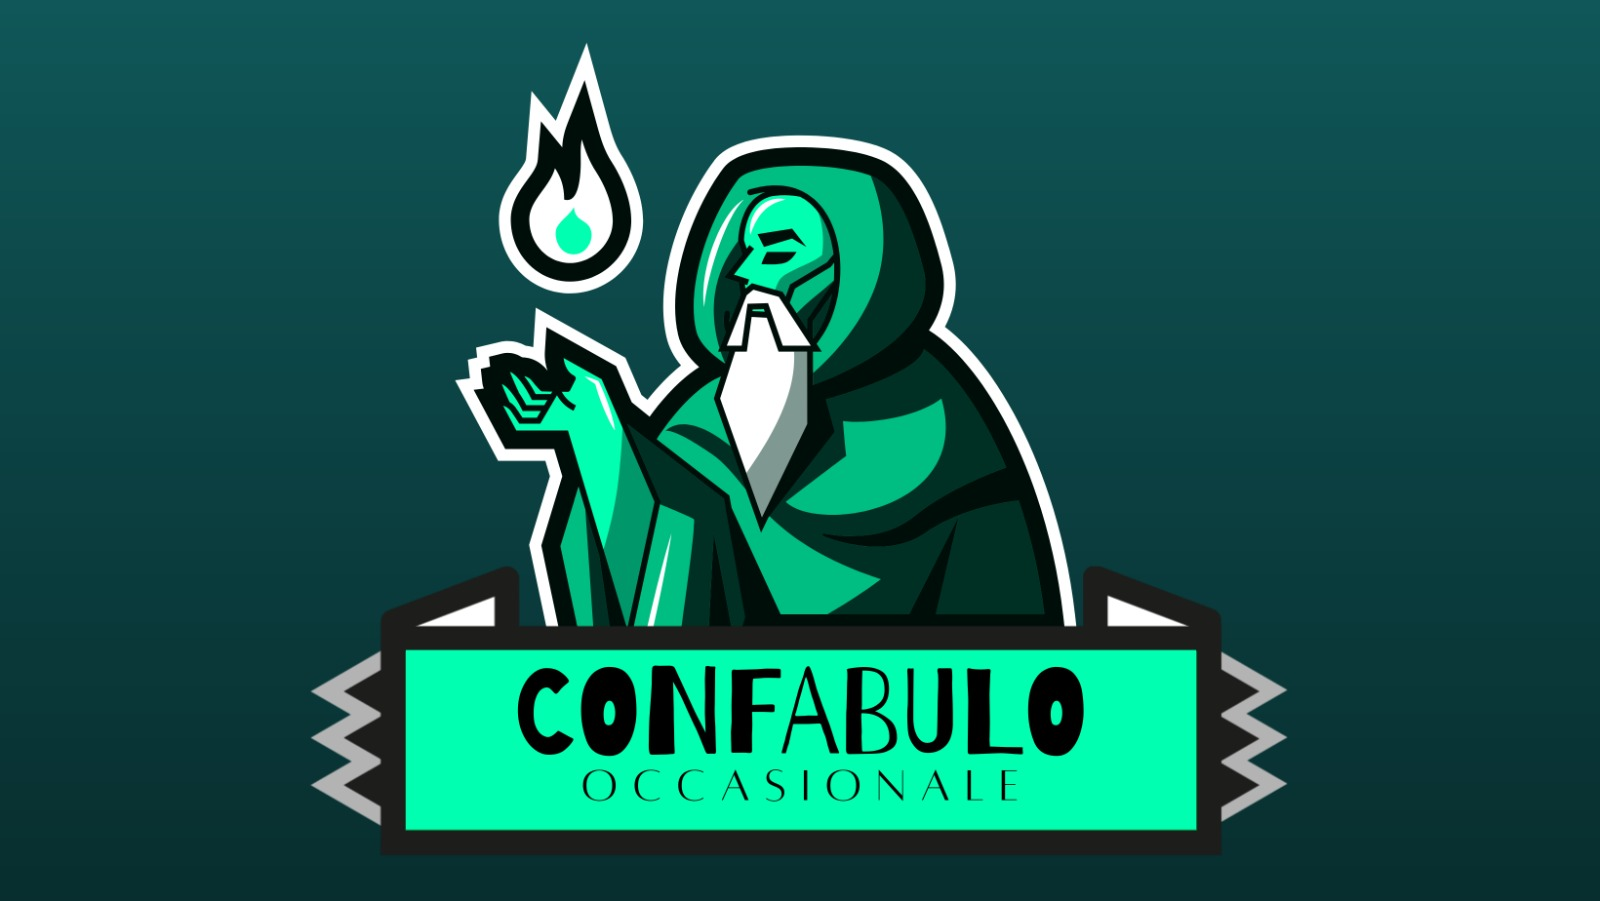 Confabulo Occasionale – G1G1